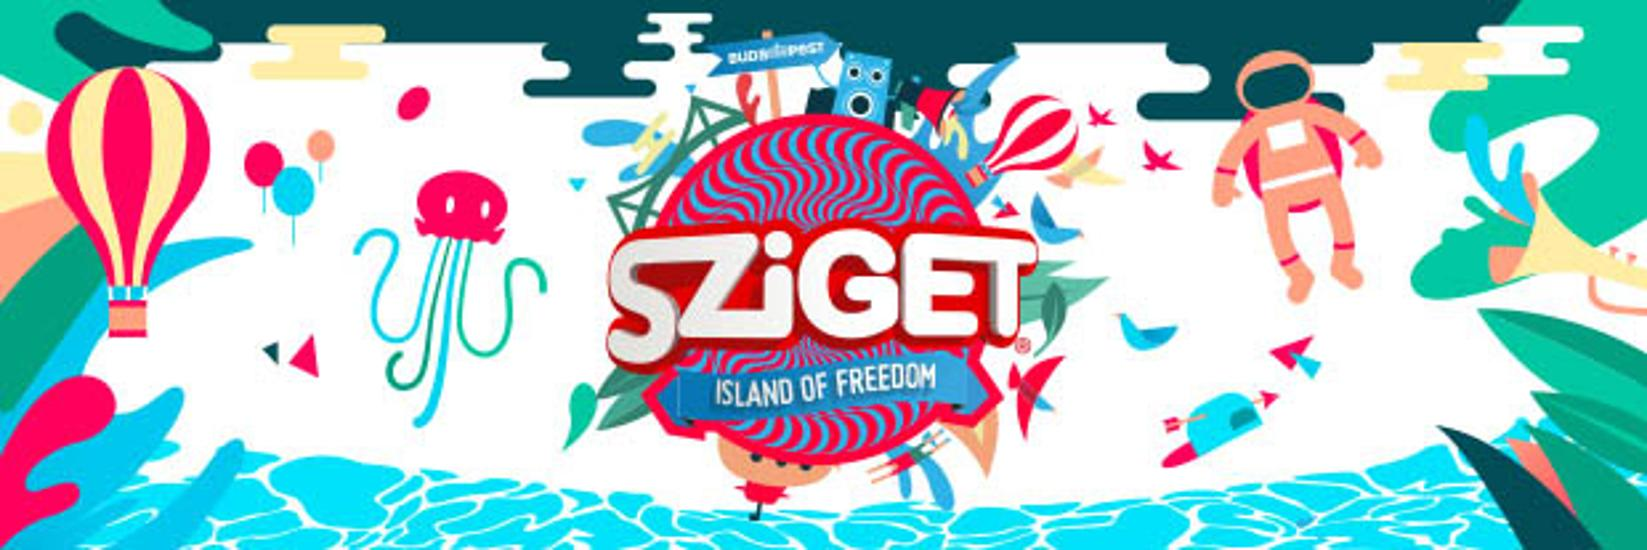 Sziget Adds 9 New Names Inc: Manu Chao, Kaiser Chiefs